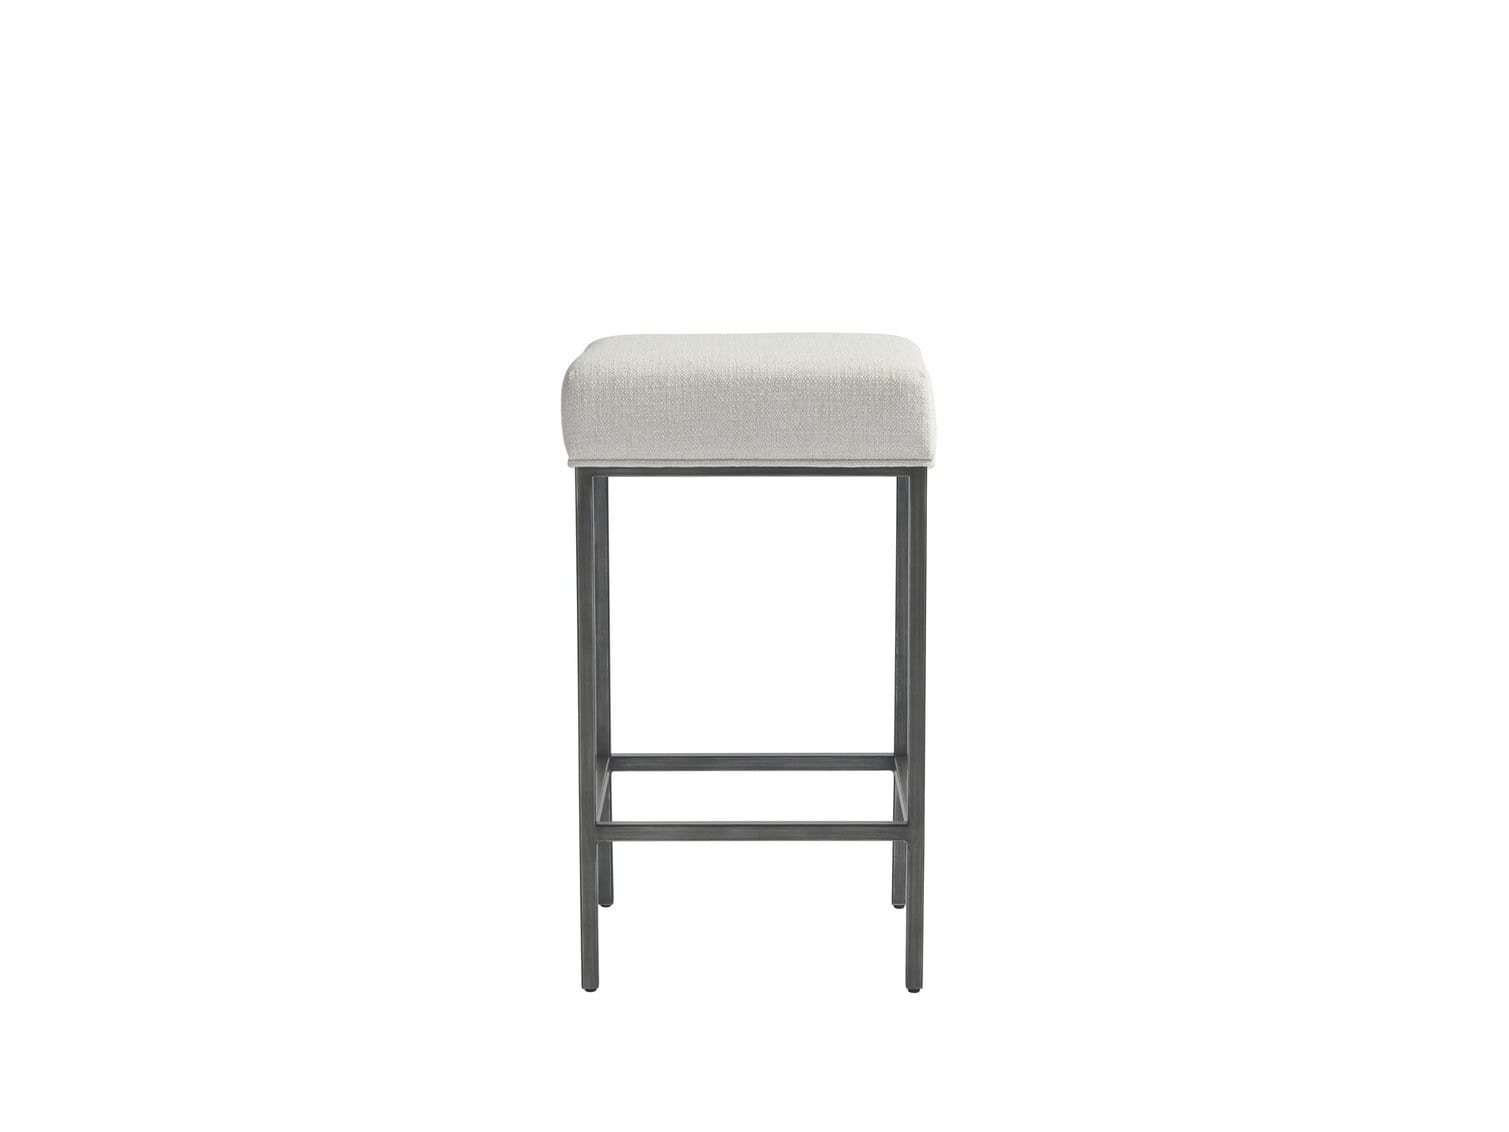 Alchemy Living Alchemy Living Gallery Engage Console Stool - Gray 915X803-S